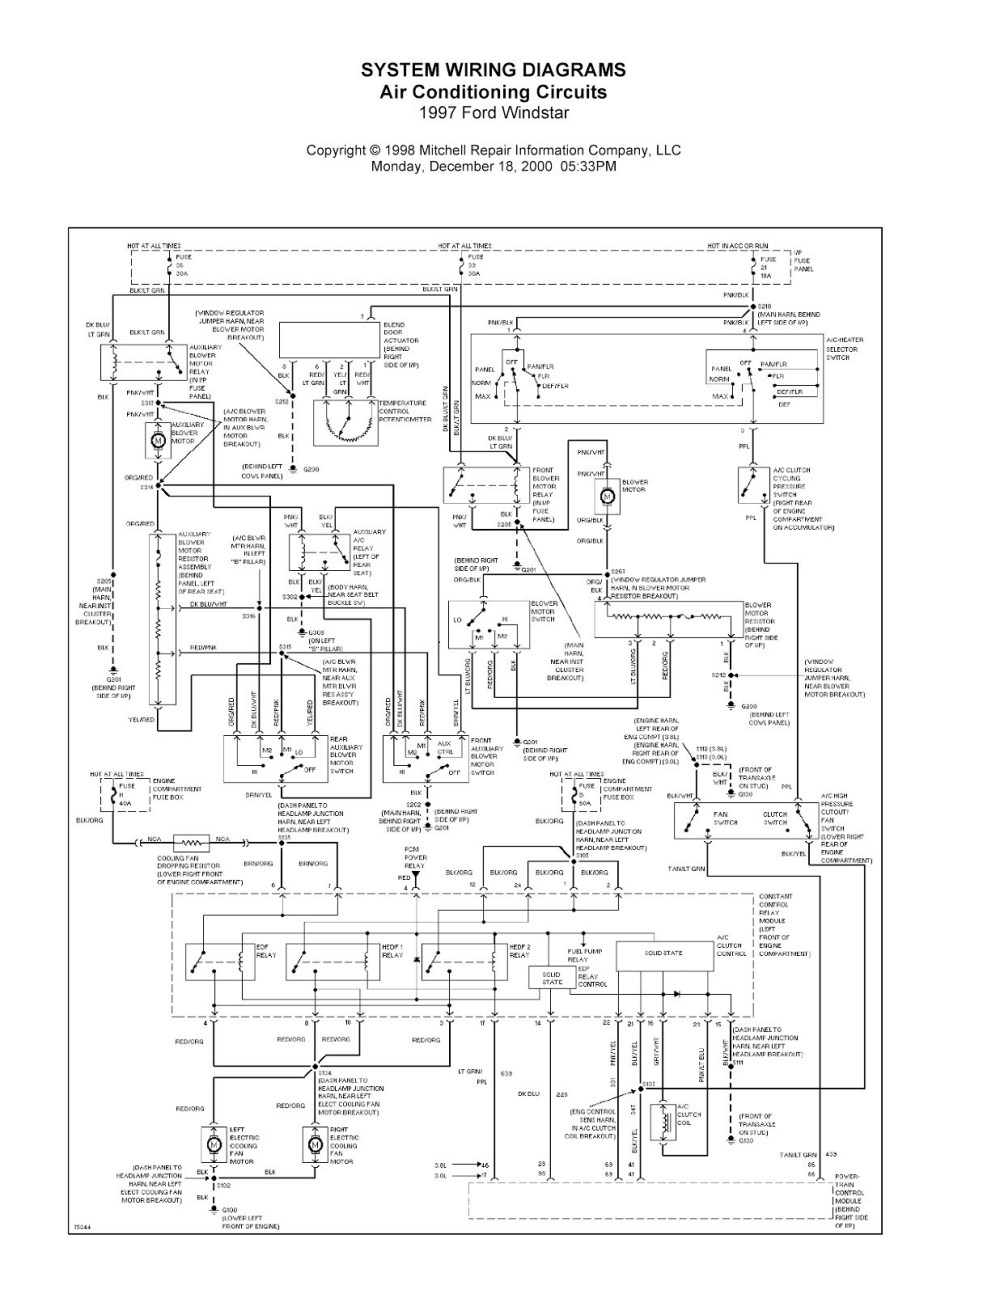 medium resolution of 1998 ford windstar wiring schematic wiring diagram blog 98 ford windstar wiring diagram 1998 ford windstar wiring schematic